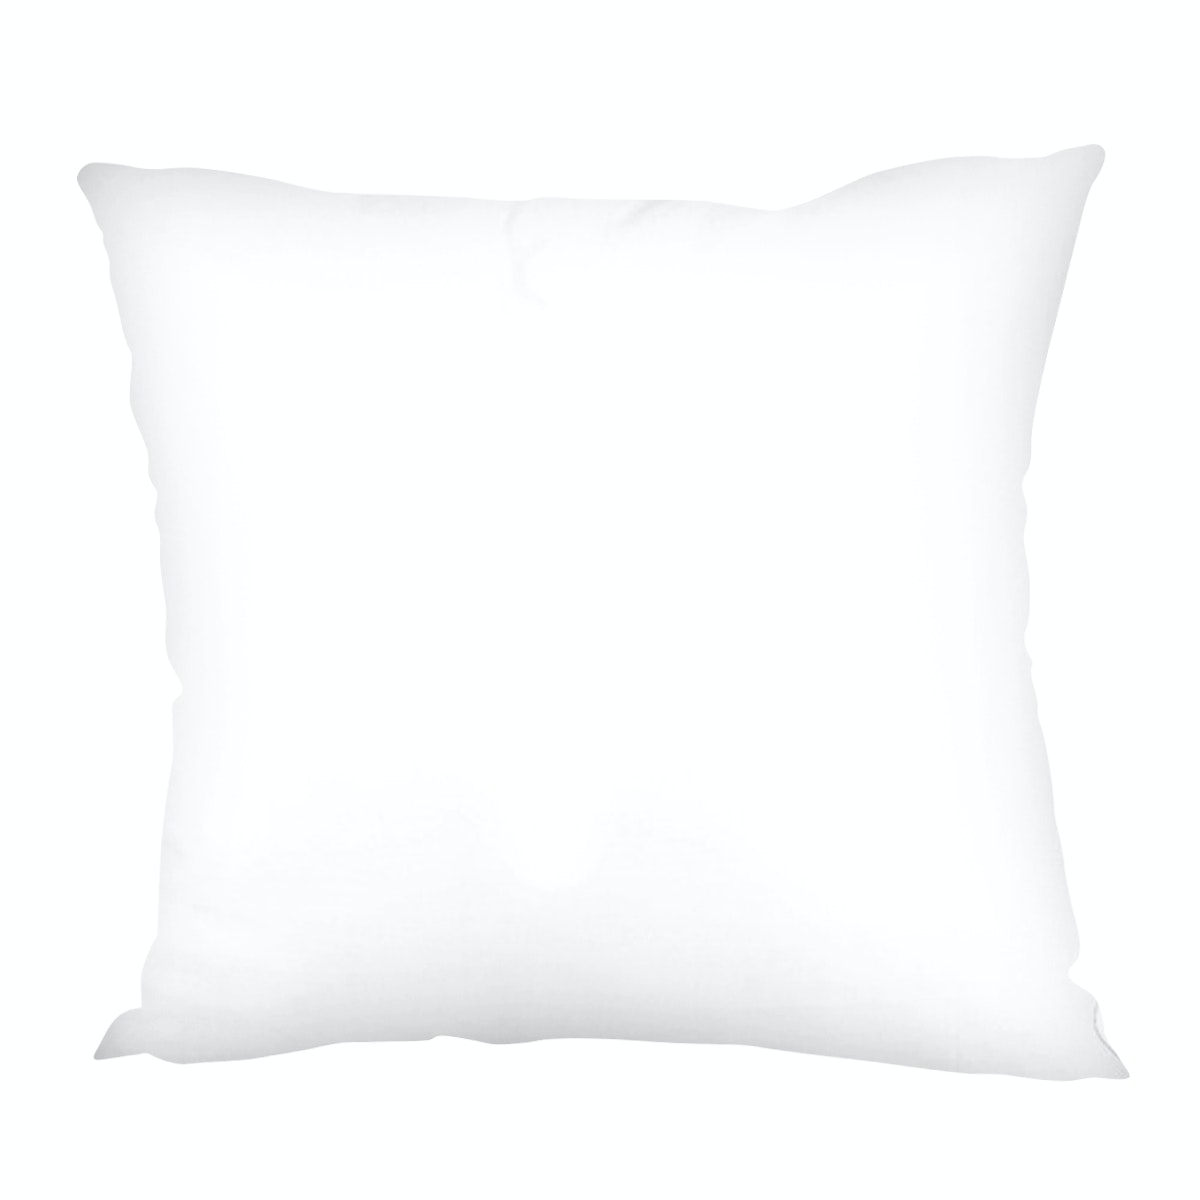 Glerry Home Decor Snow Cushion 40x40cm